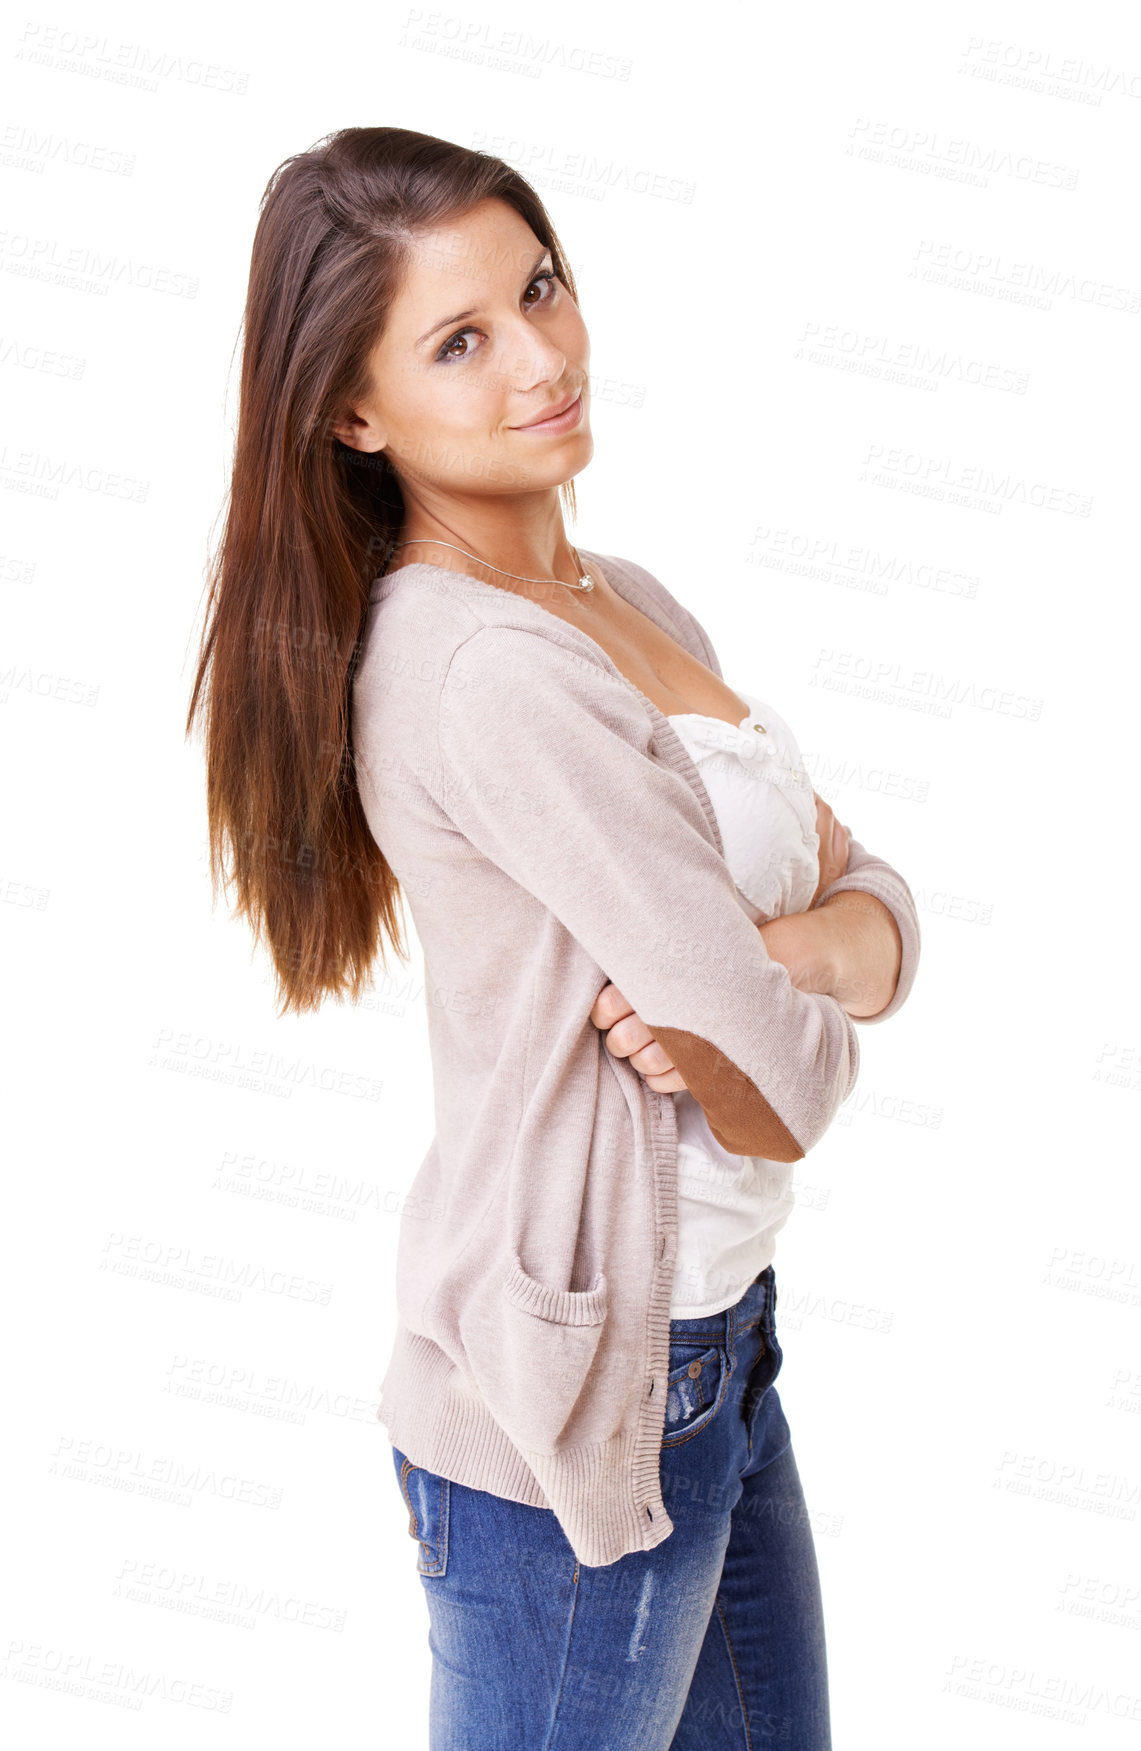 Buy stock photo Studio show of a beautiful young woman standing with her arms folded against a white background